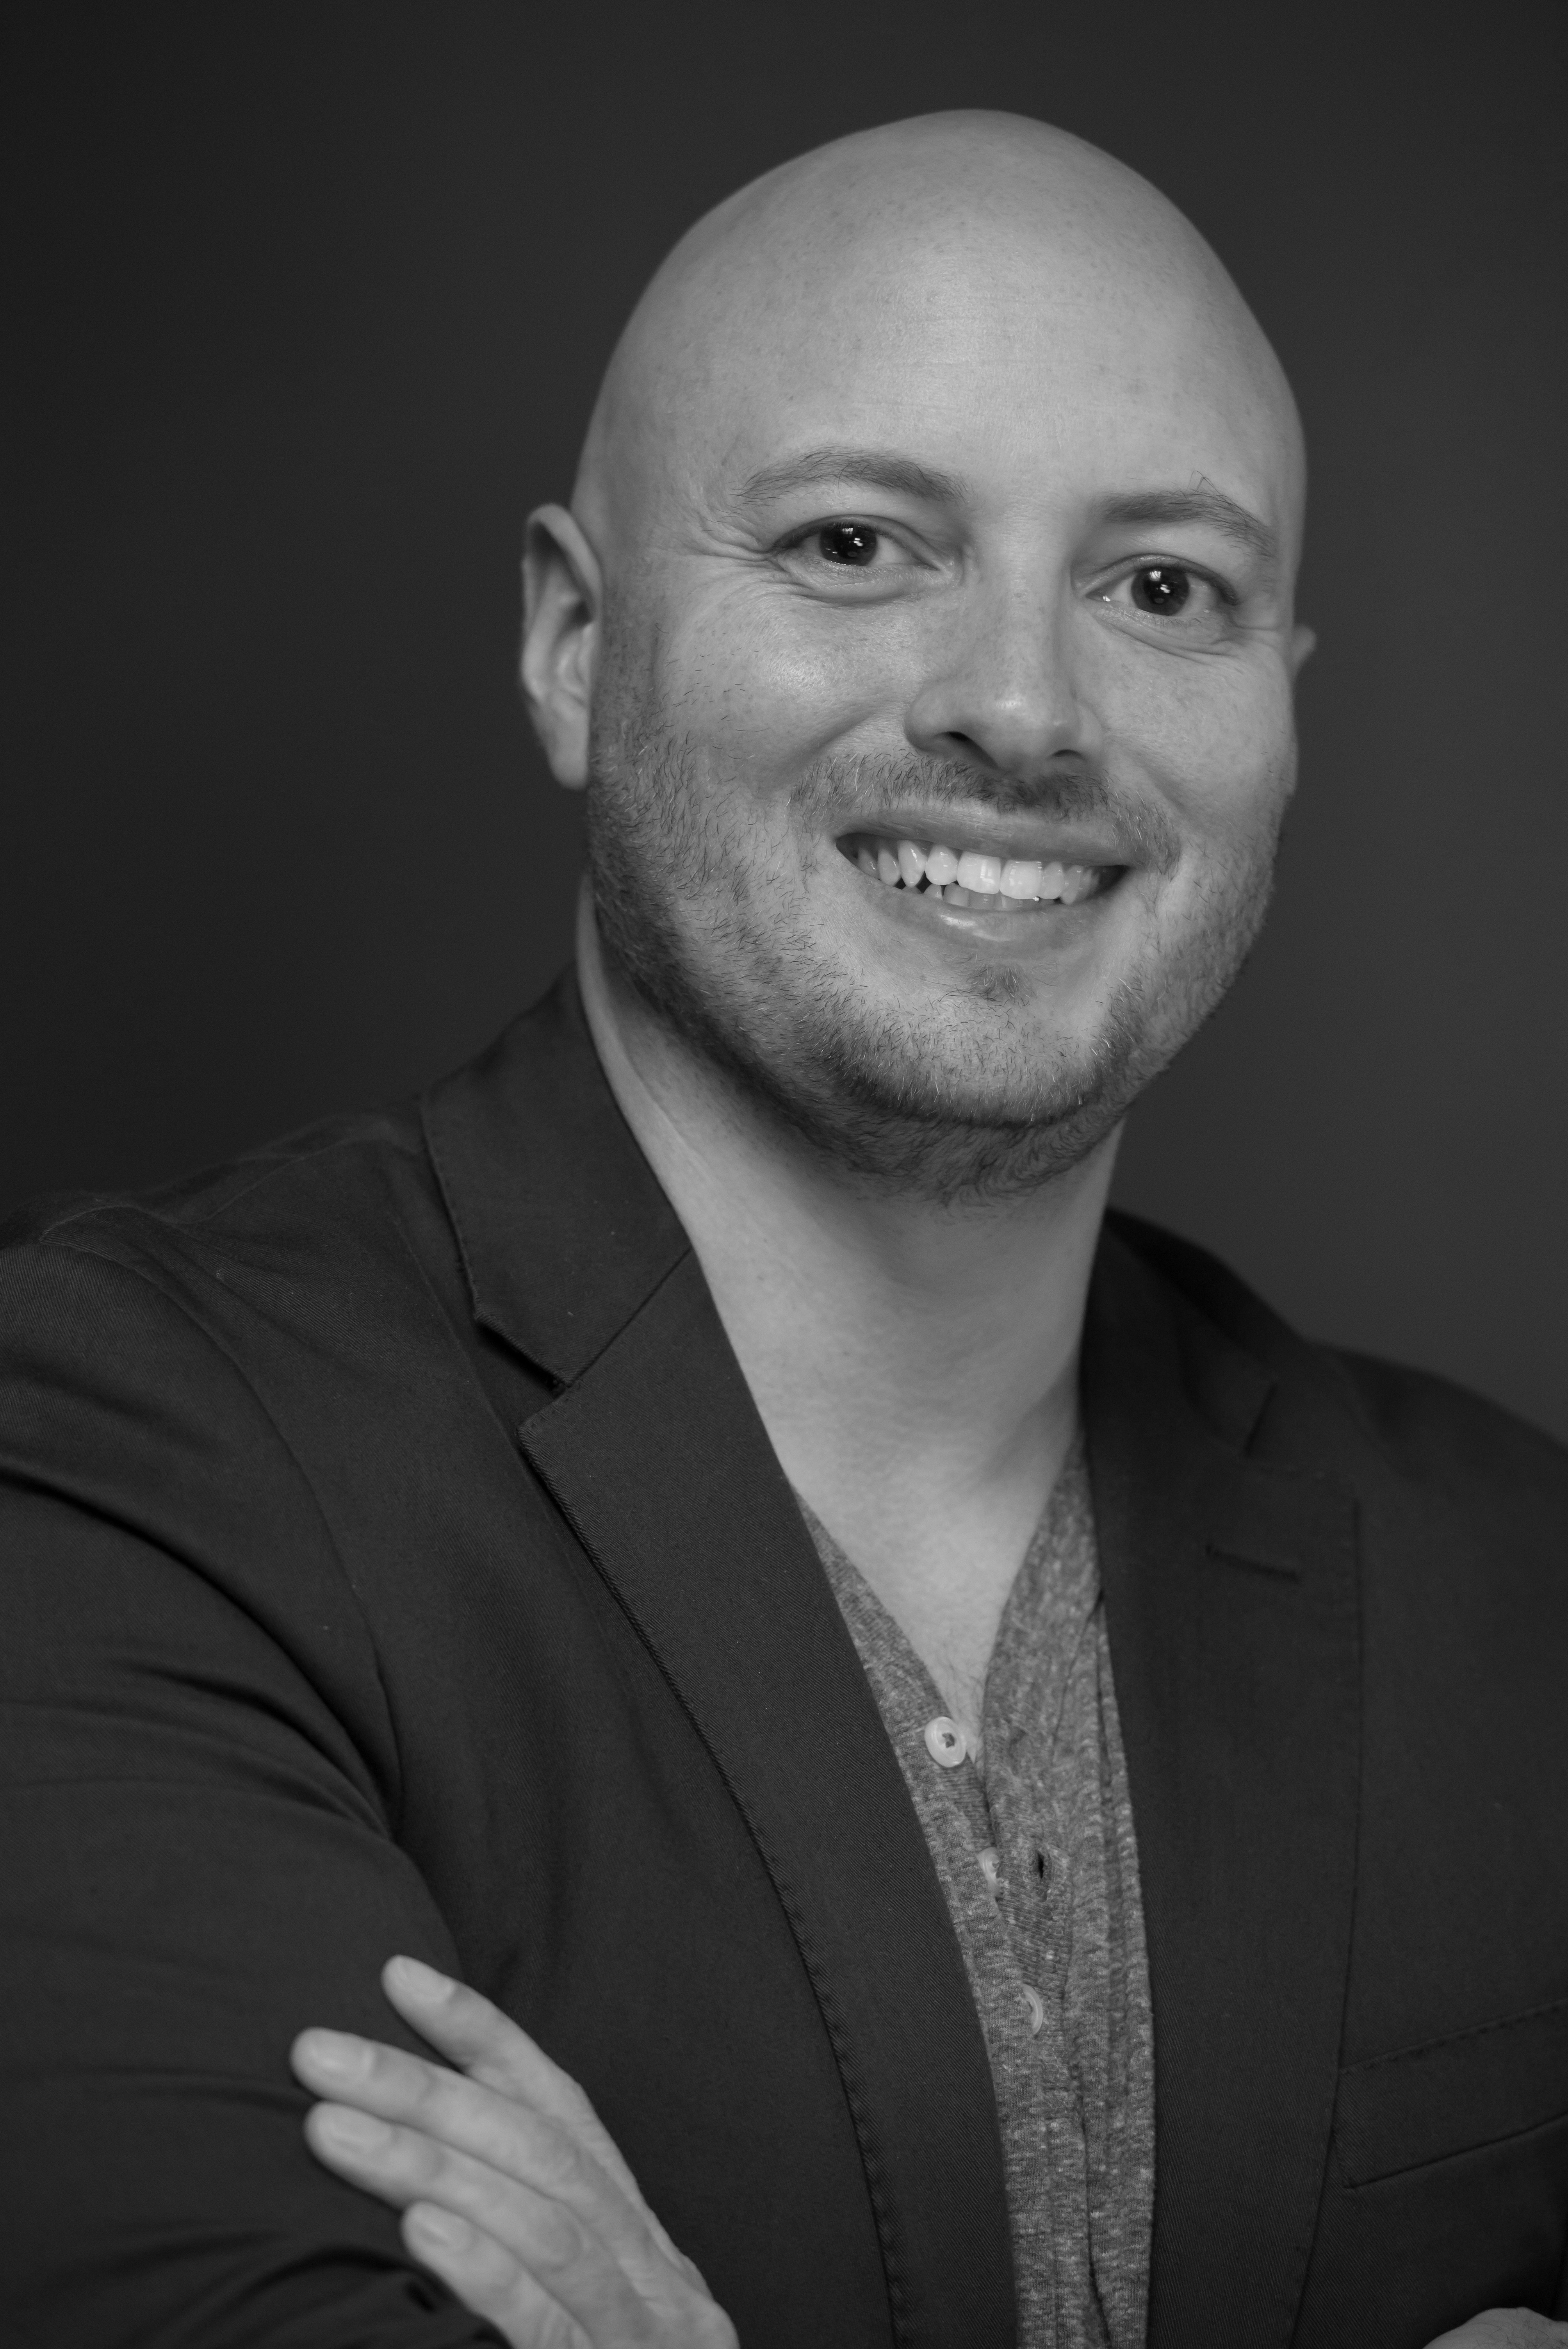 Certified BizHack Academy instructor and coach Giovanni Insignares is an expert digital marketer who teaches businesses how to find new customers using online advertising and social media marketing